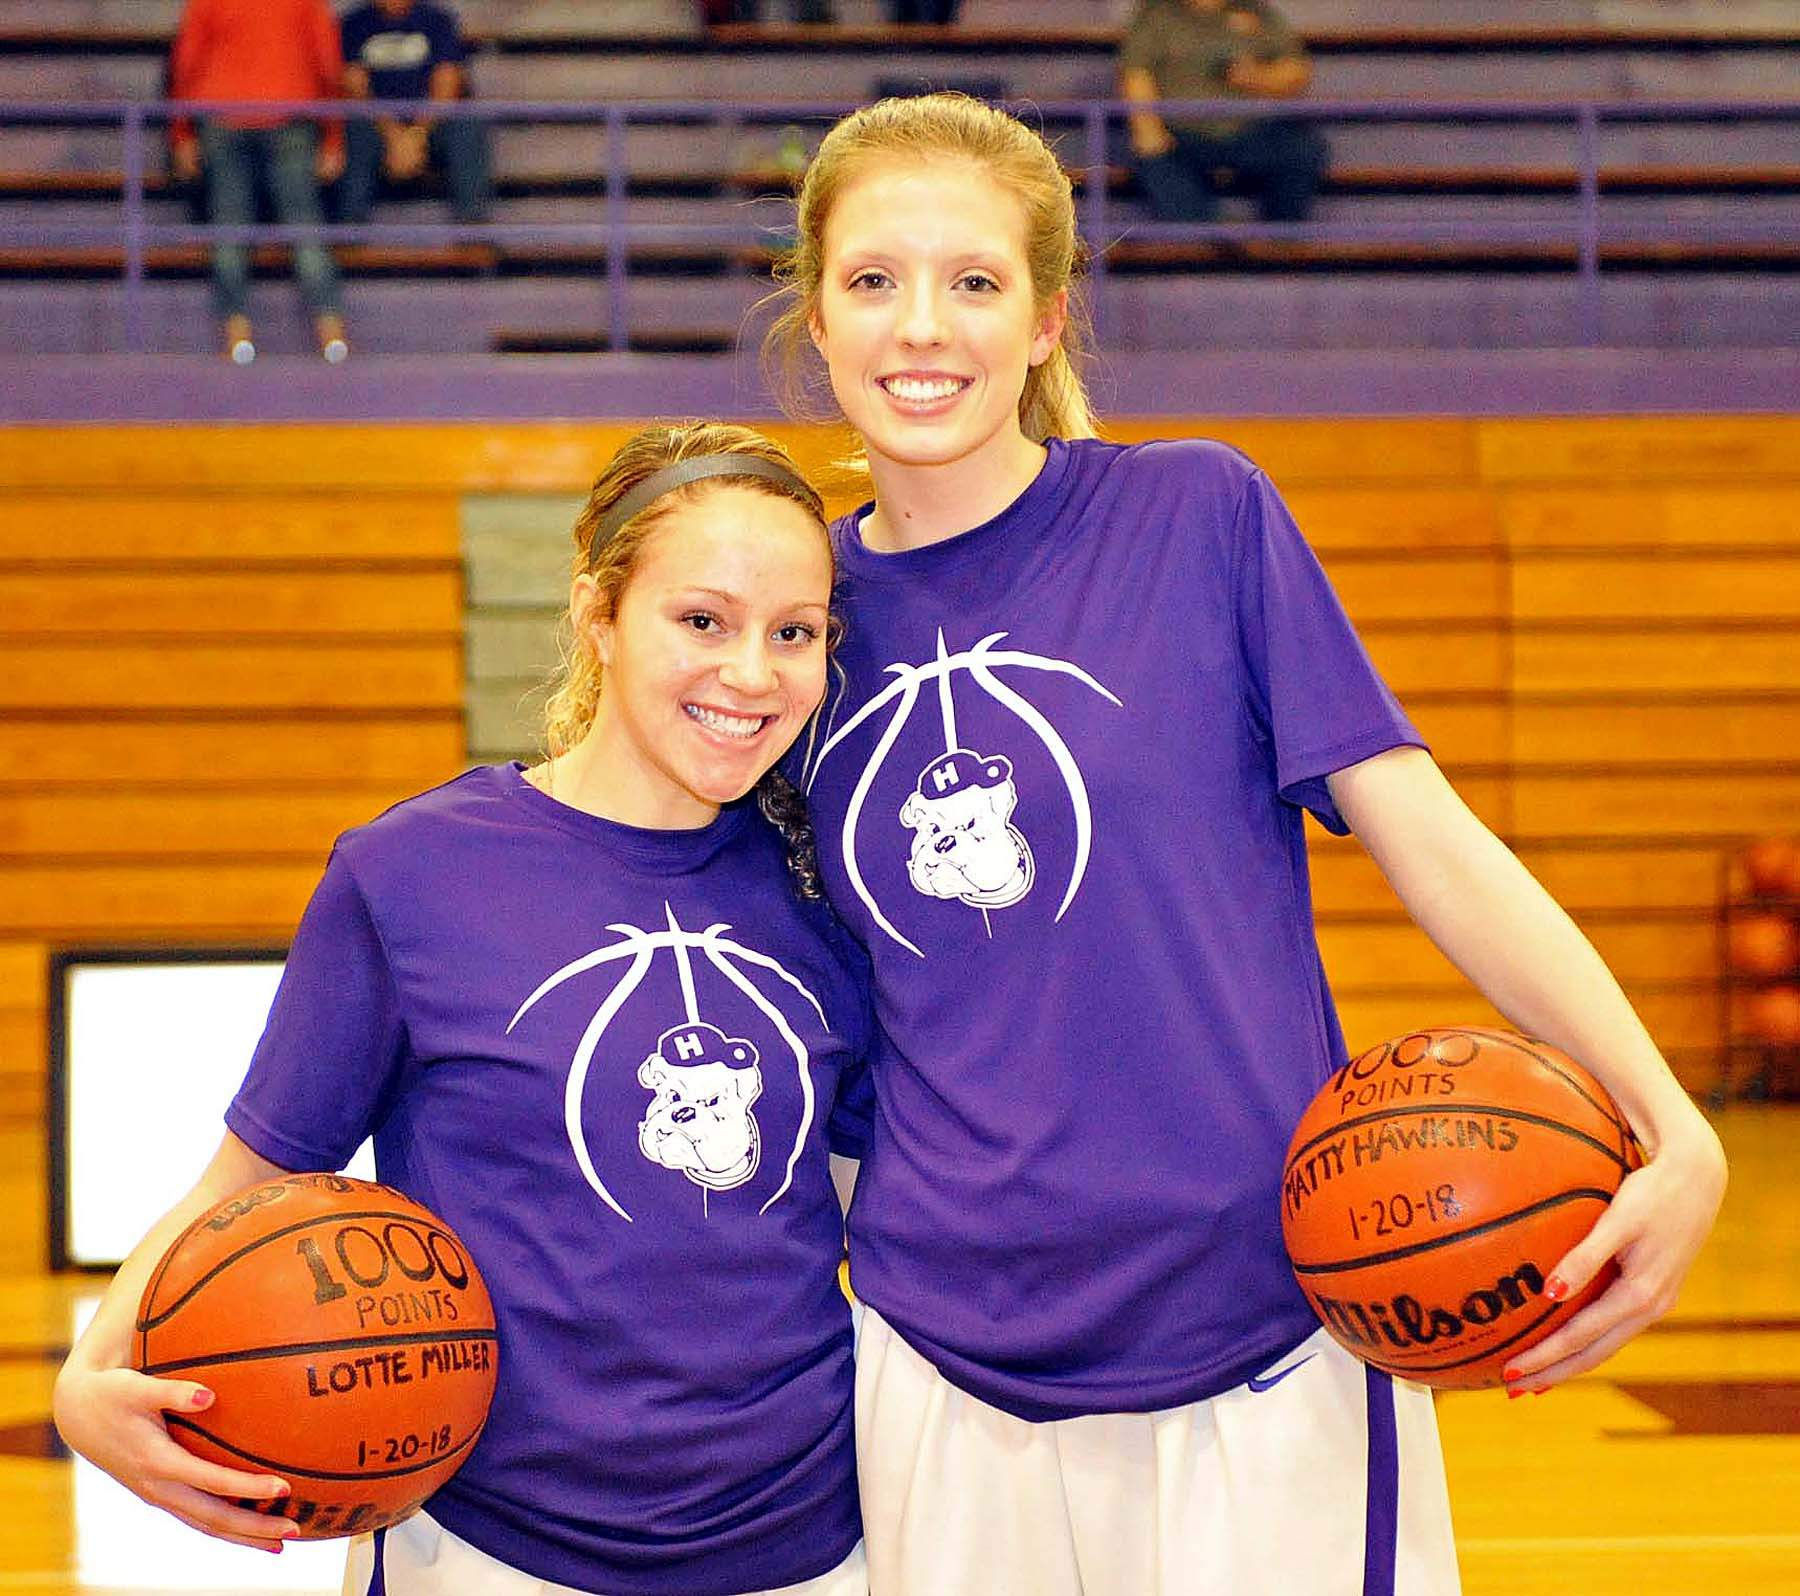 Lotte Miller (left) and Matty Hawkins (right) each surpassed 1,000 career points recently and were presented game balls Tuesday evening before their game with Massac County at Davenport Gym in Harrisburg.